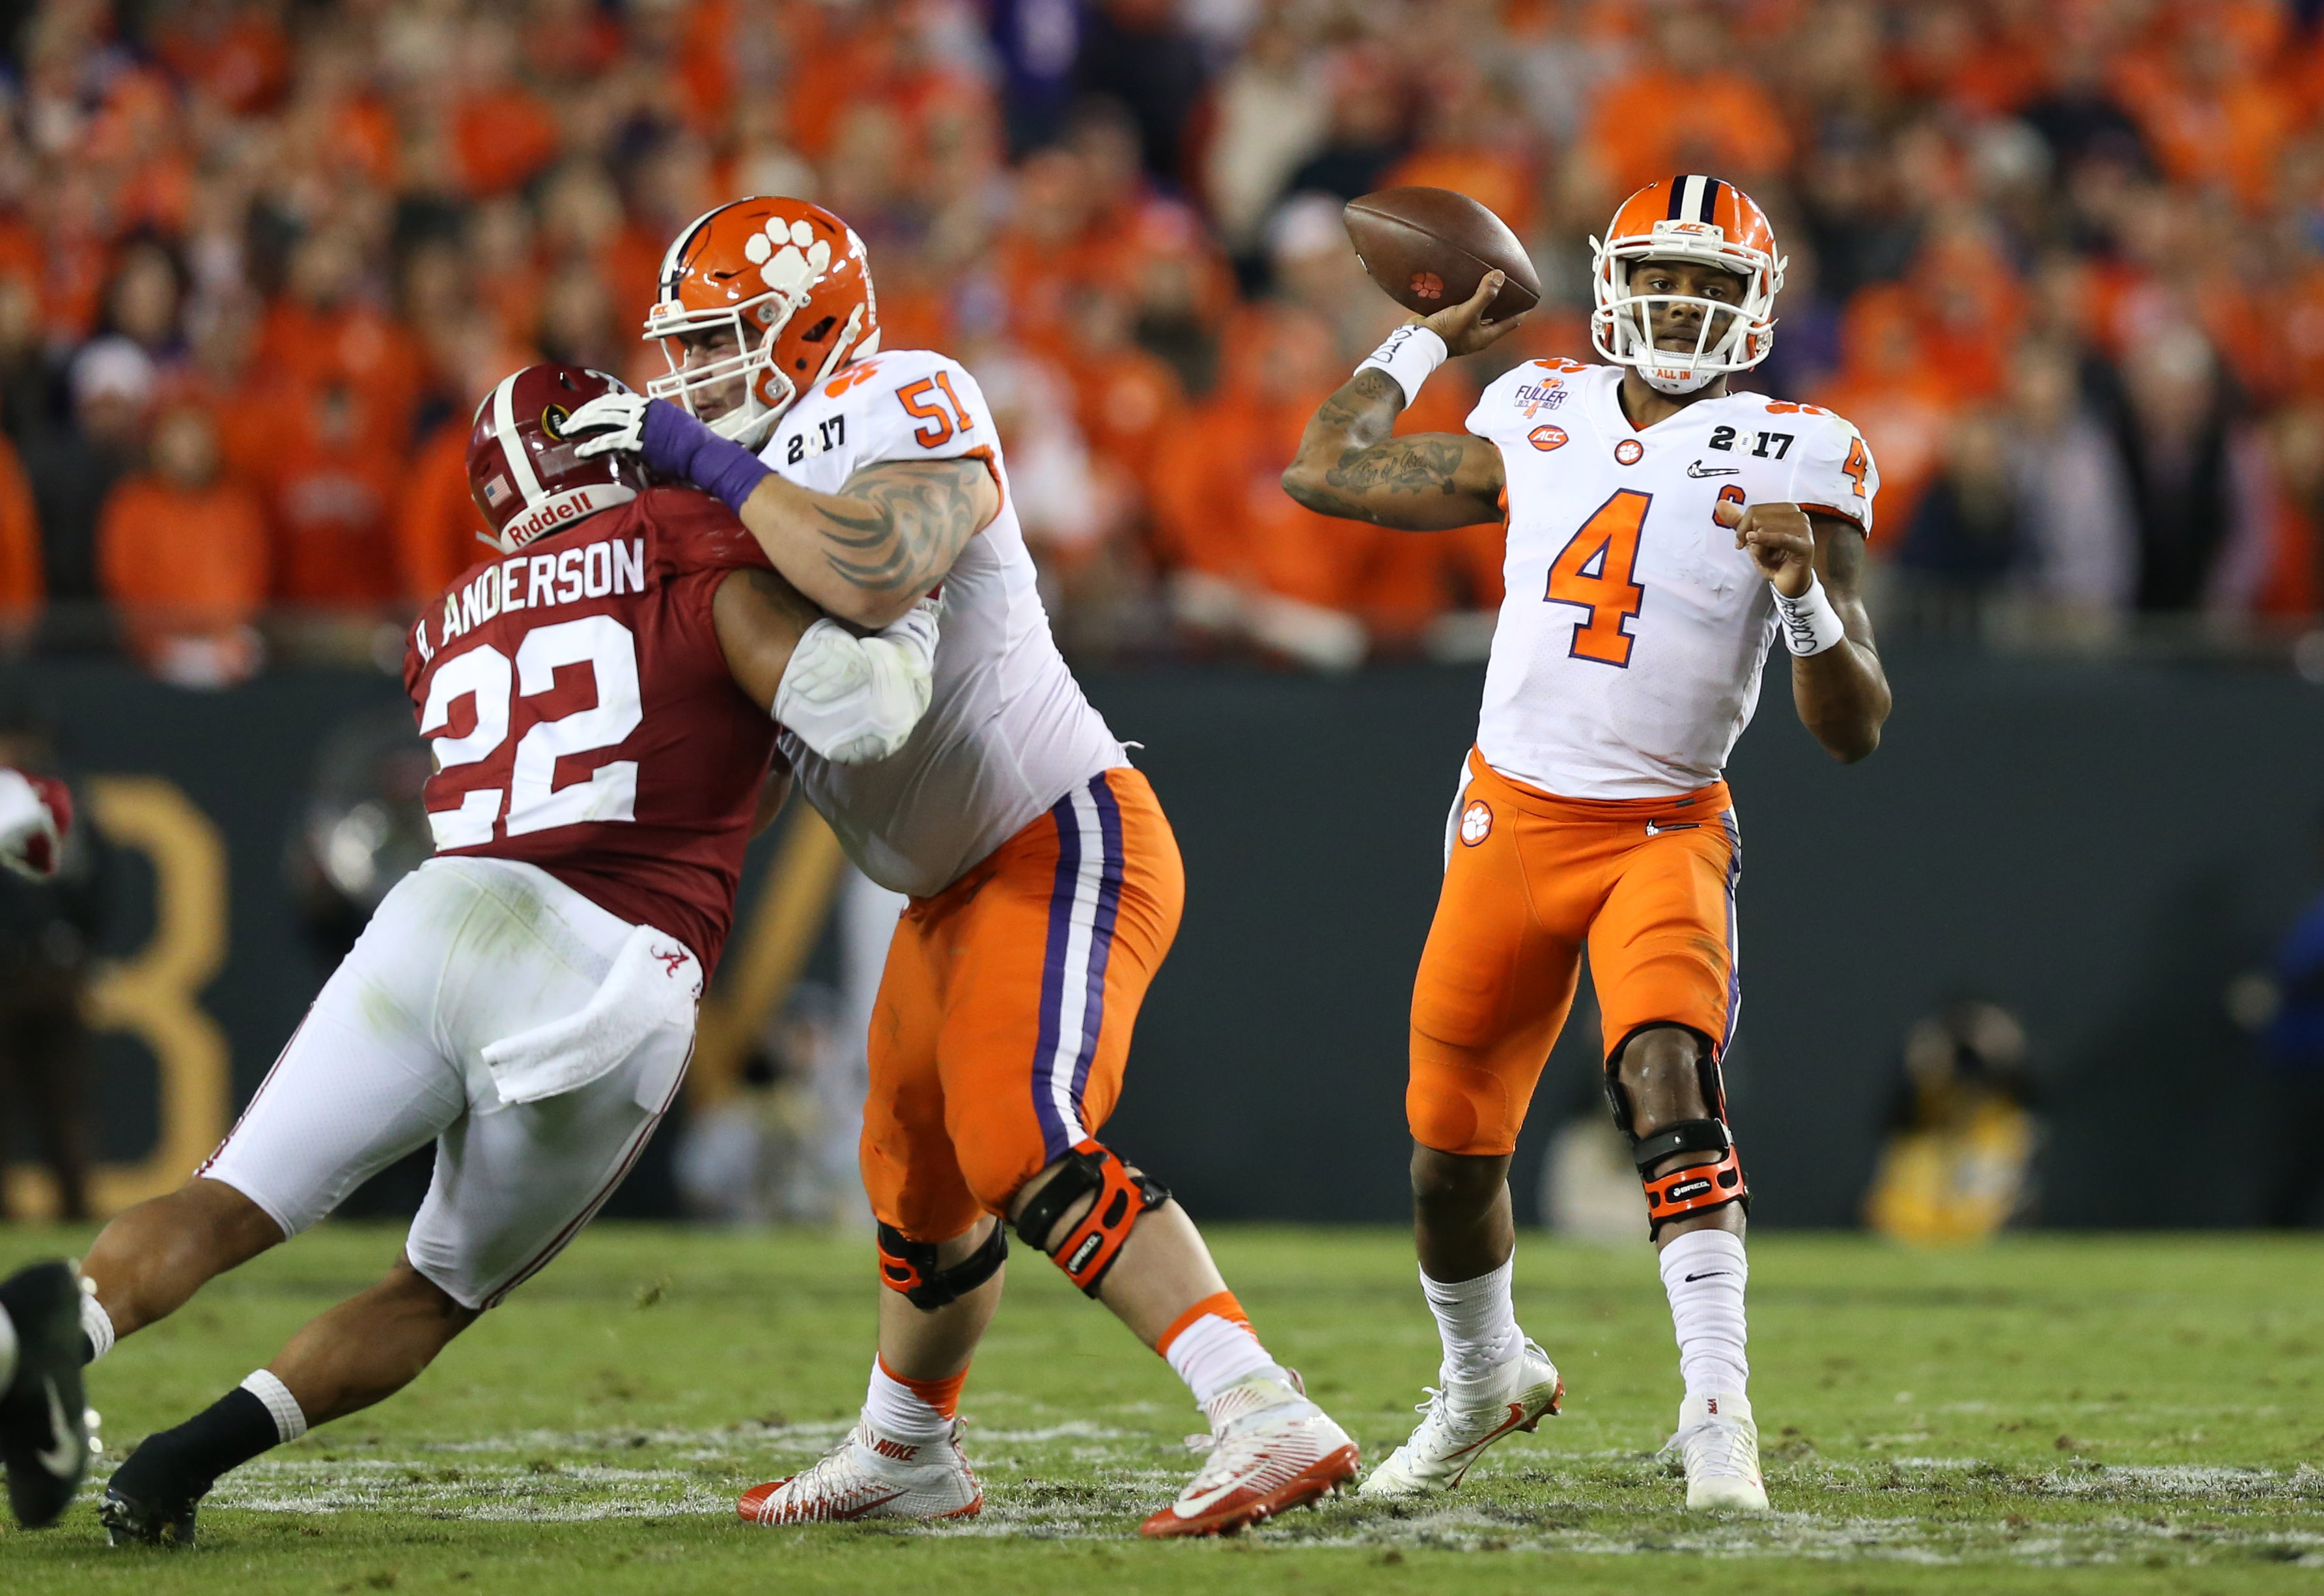 Jan 9, 2017; Tampa, FL, USA; Clemson Tigers quarterback Deshaun Watson (4) throws in the pocket against the Alabama Crimson Tide in the 2017 College Football Playoff National Championship Game at Raymond James Stadium. Mandatory Credit: Matthew Emmons-USA TODAY Sports